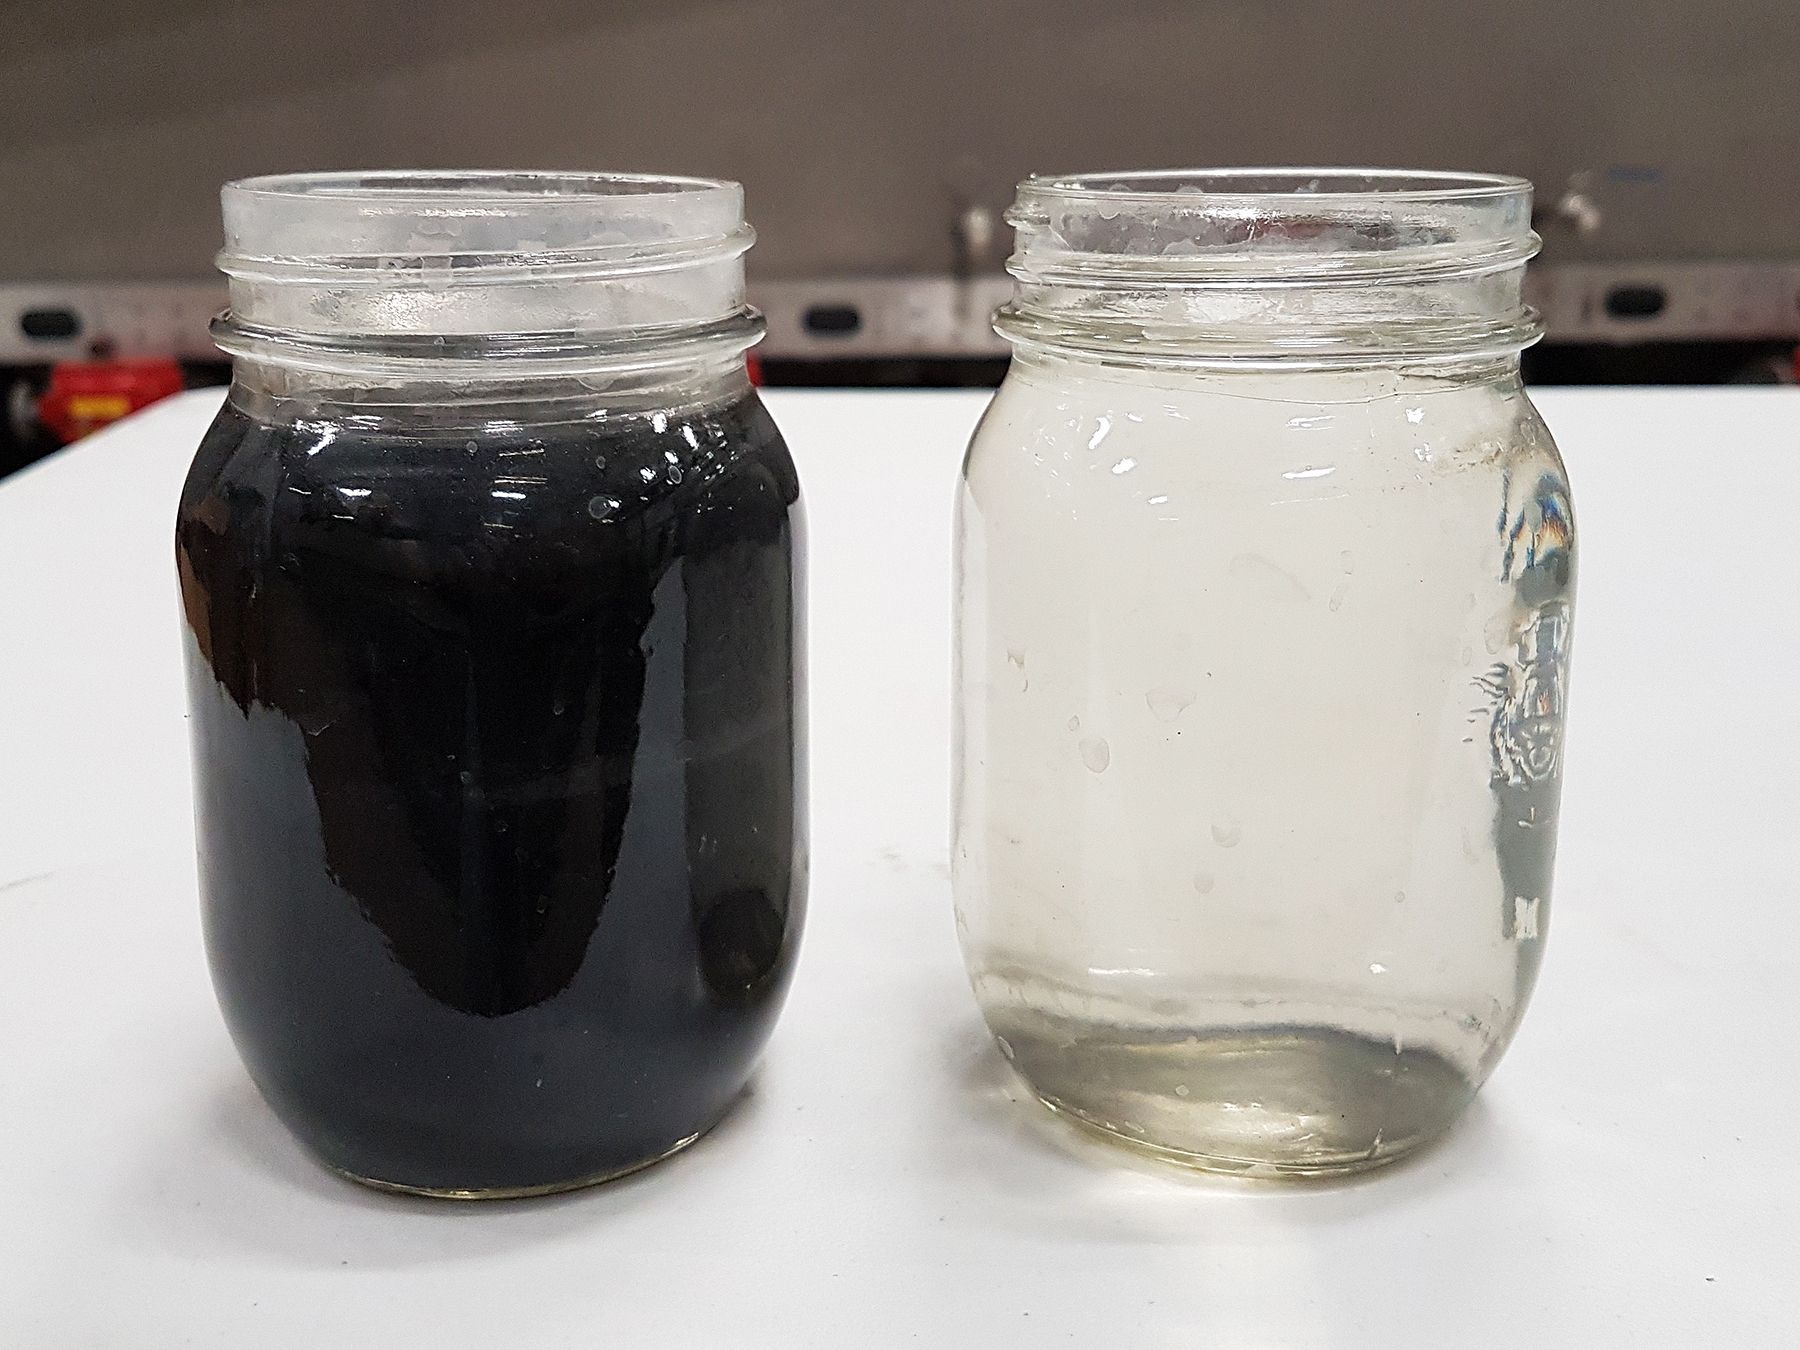 Wastewater treatment before and after